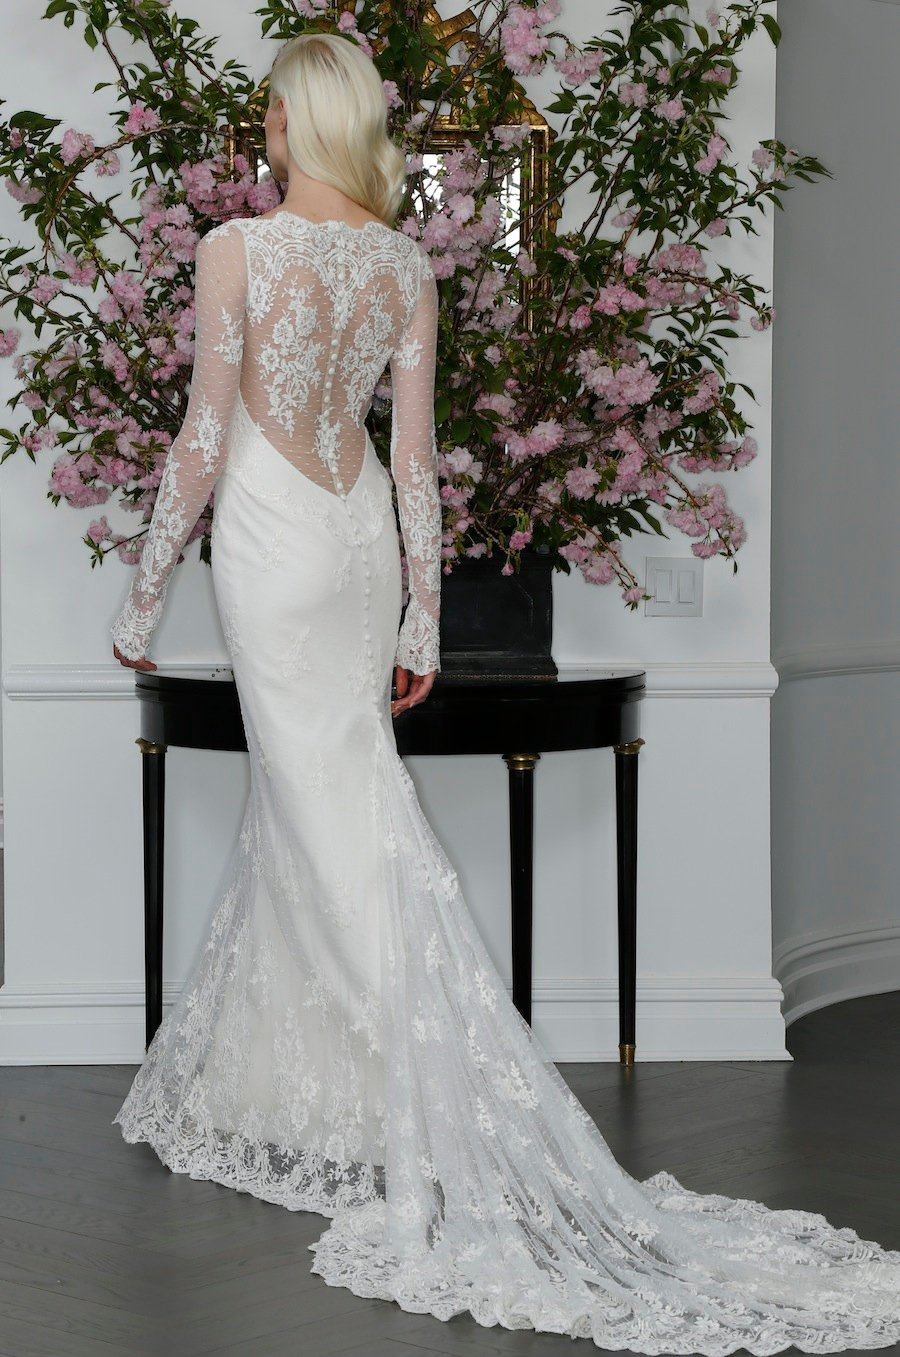 25 Fabulous Wedding Dress Backs You Have to See | Washingtonian